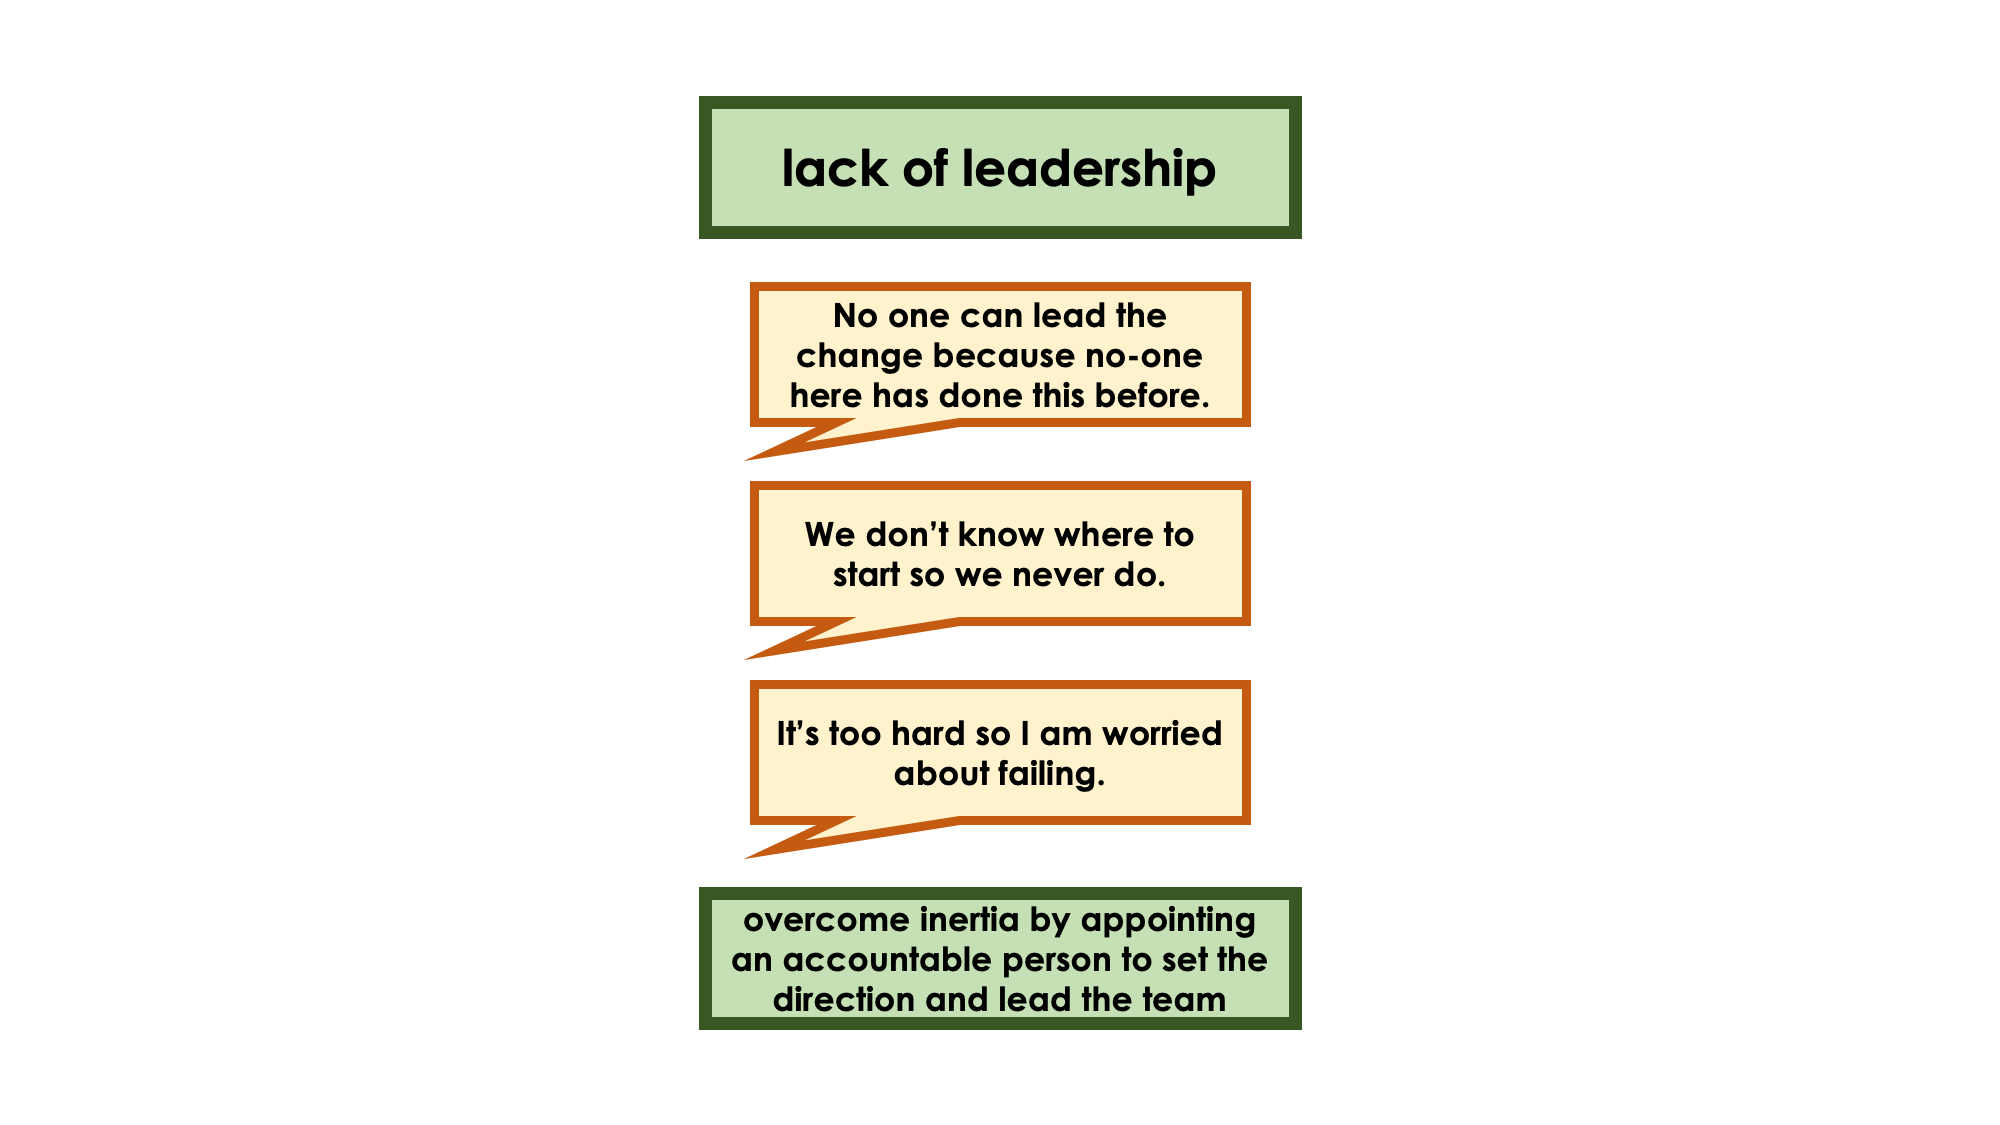 image illustrating challenges of a lack of leadership: No one can lead the change because no-one here has done this before. We don't know where to start so we never do. It's too hard so I am worried about failing. You can overcome inertia by appointing an accountable person to set the direction and lead the team